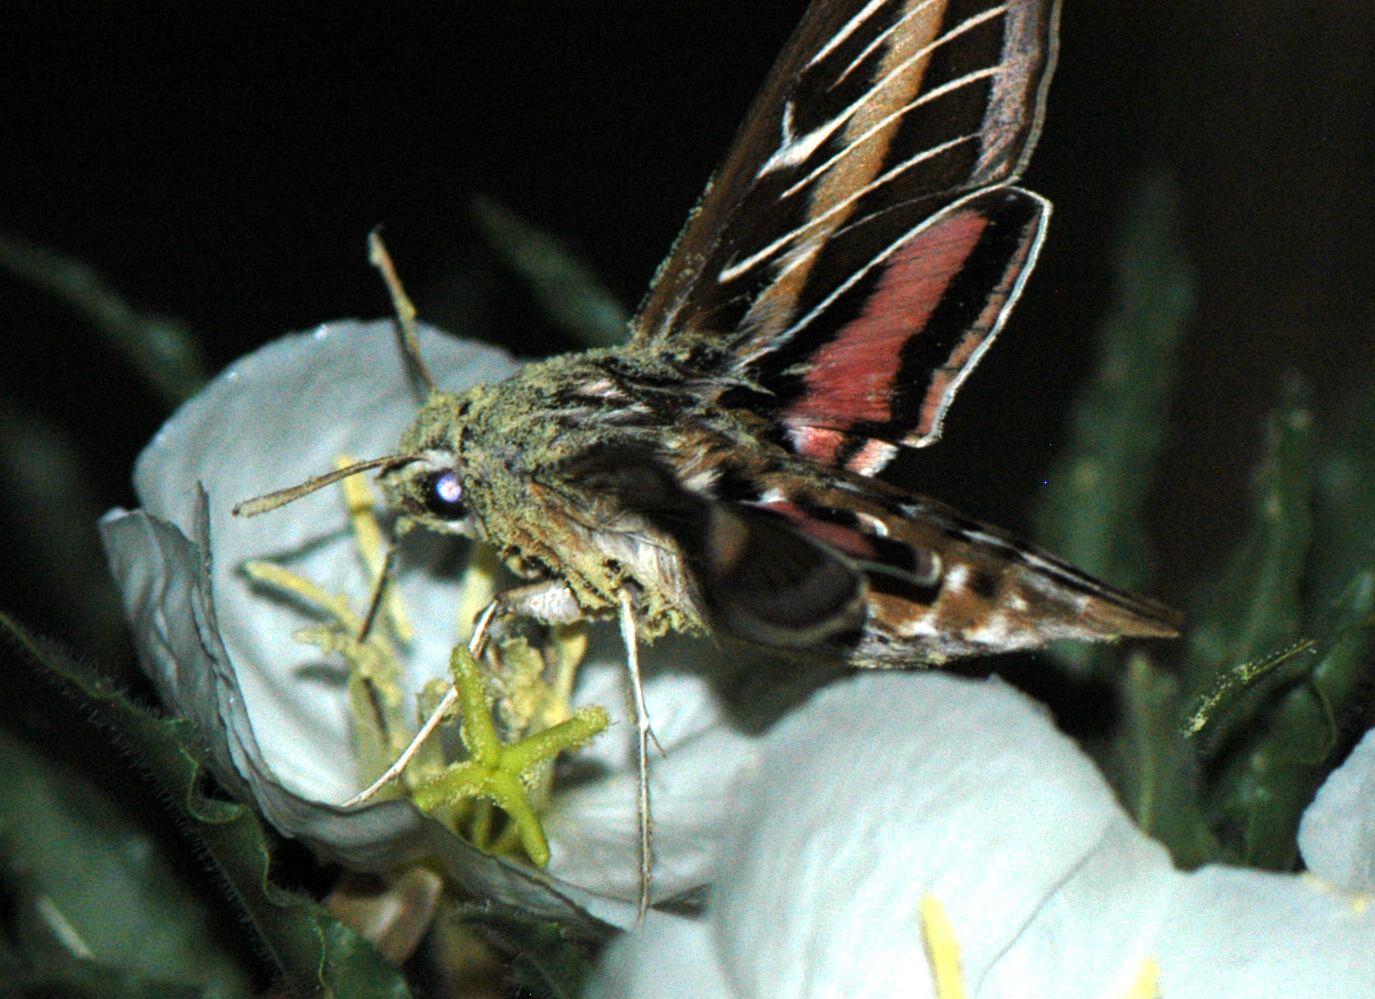 Hawkmoth Pollination Promotes Promiscuity in Plants